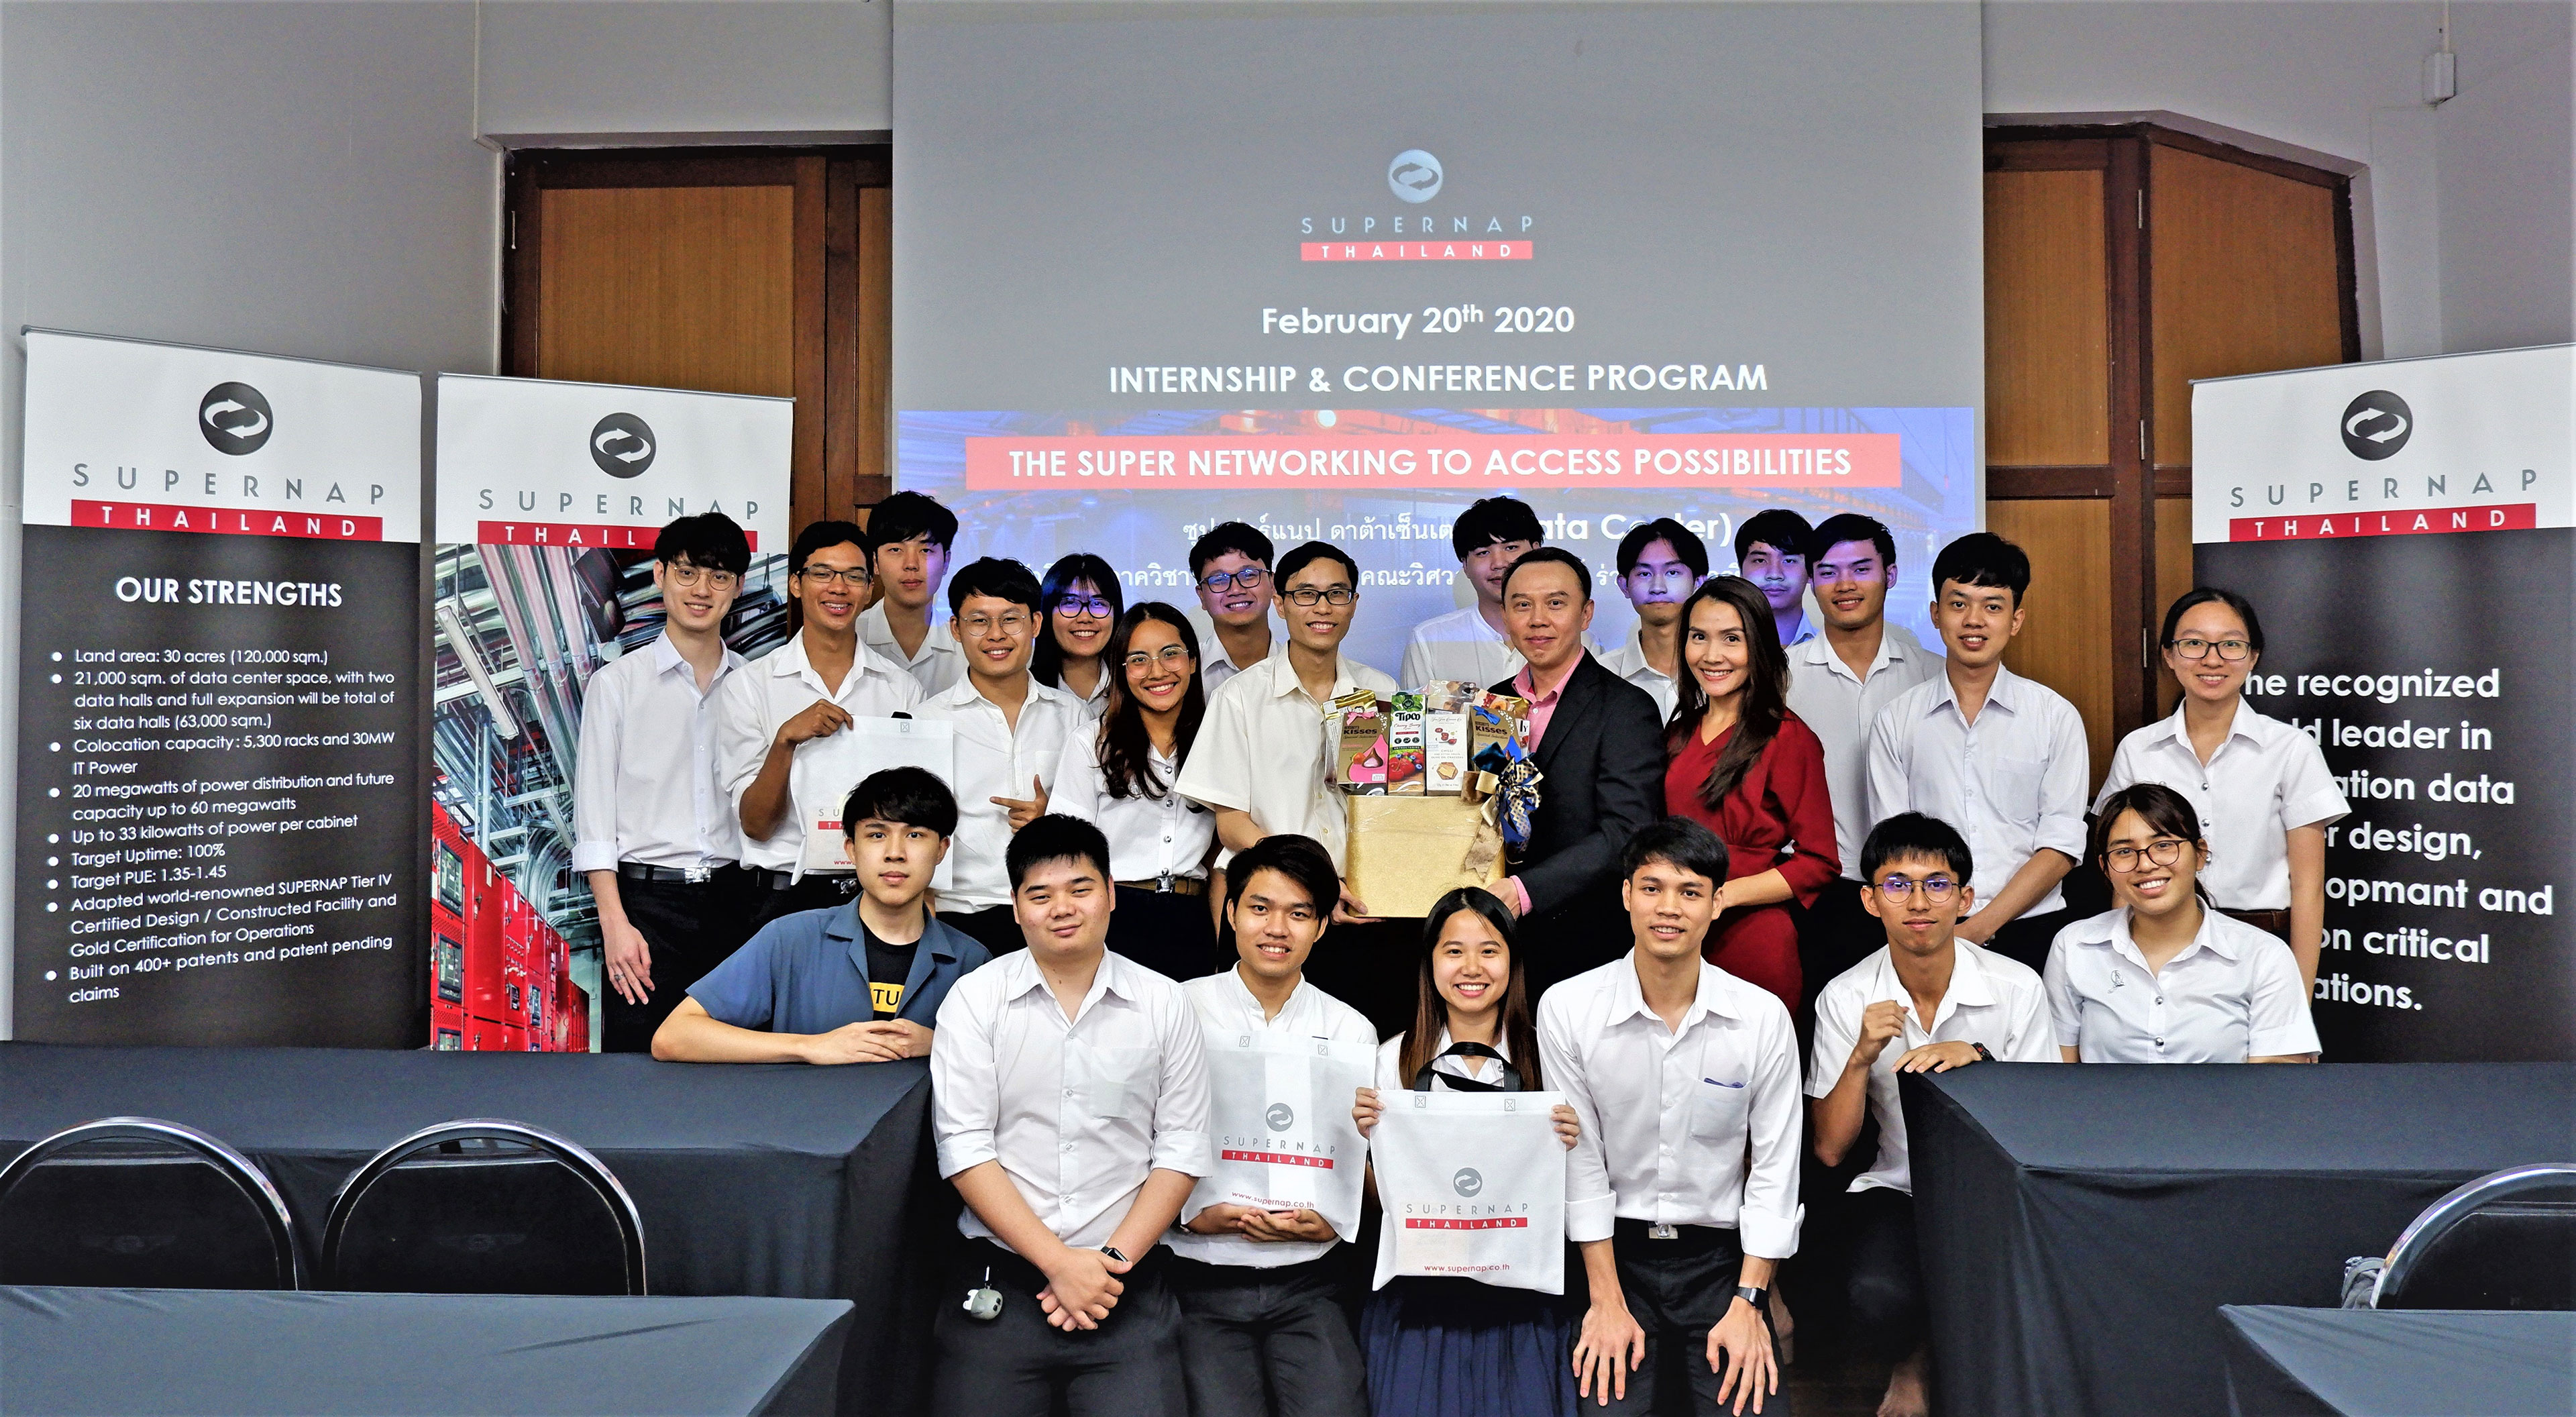 SUPERNAP (Thailand) announces a new CSR initiative, aiming at building competence IT workforce to support Thailand 4.0 policy